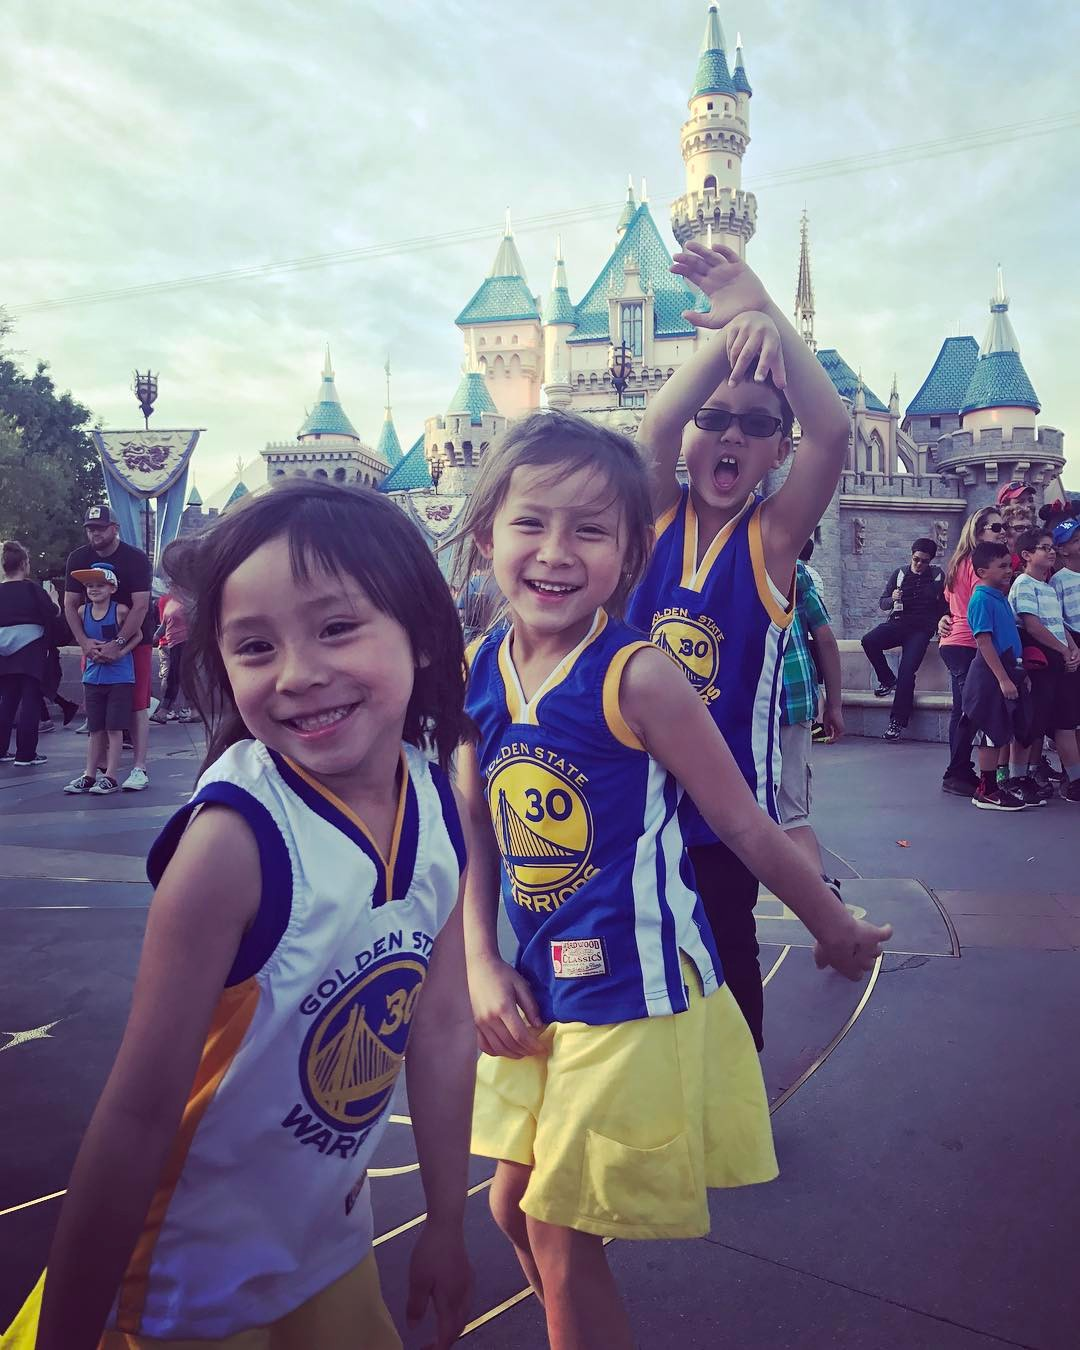 <div class='meta'><div class='origin-logo' data-origin='none'></div><span class='caption-text' data-credit='stel.rn/Instagram'>Golden State Warriors fans are showing their spirit by tagging their photos #DubsOn7.</span></div>